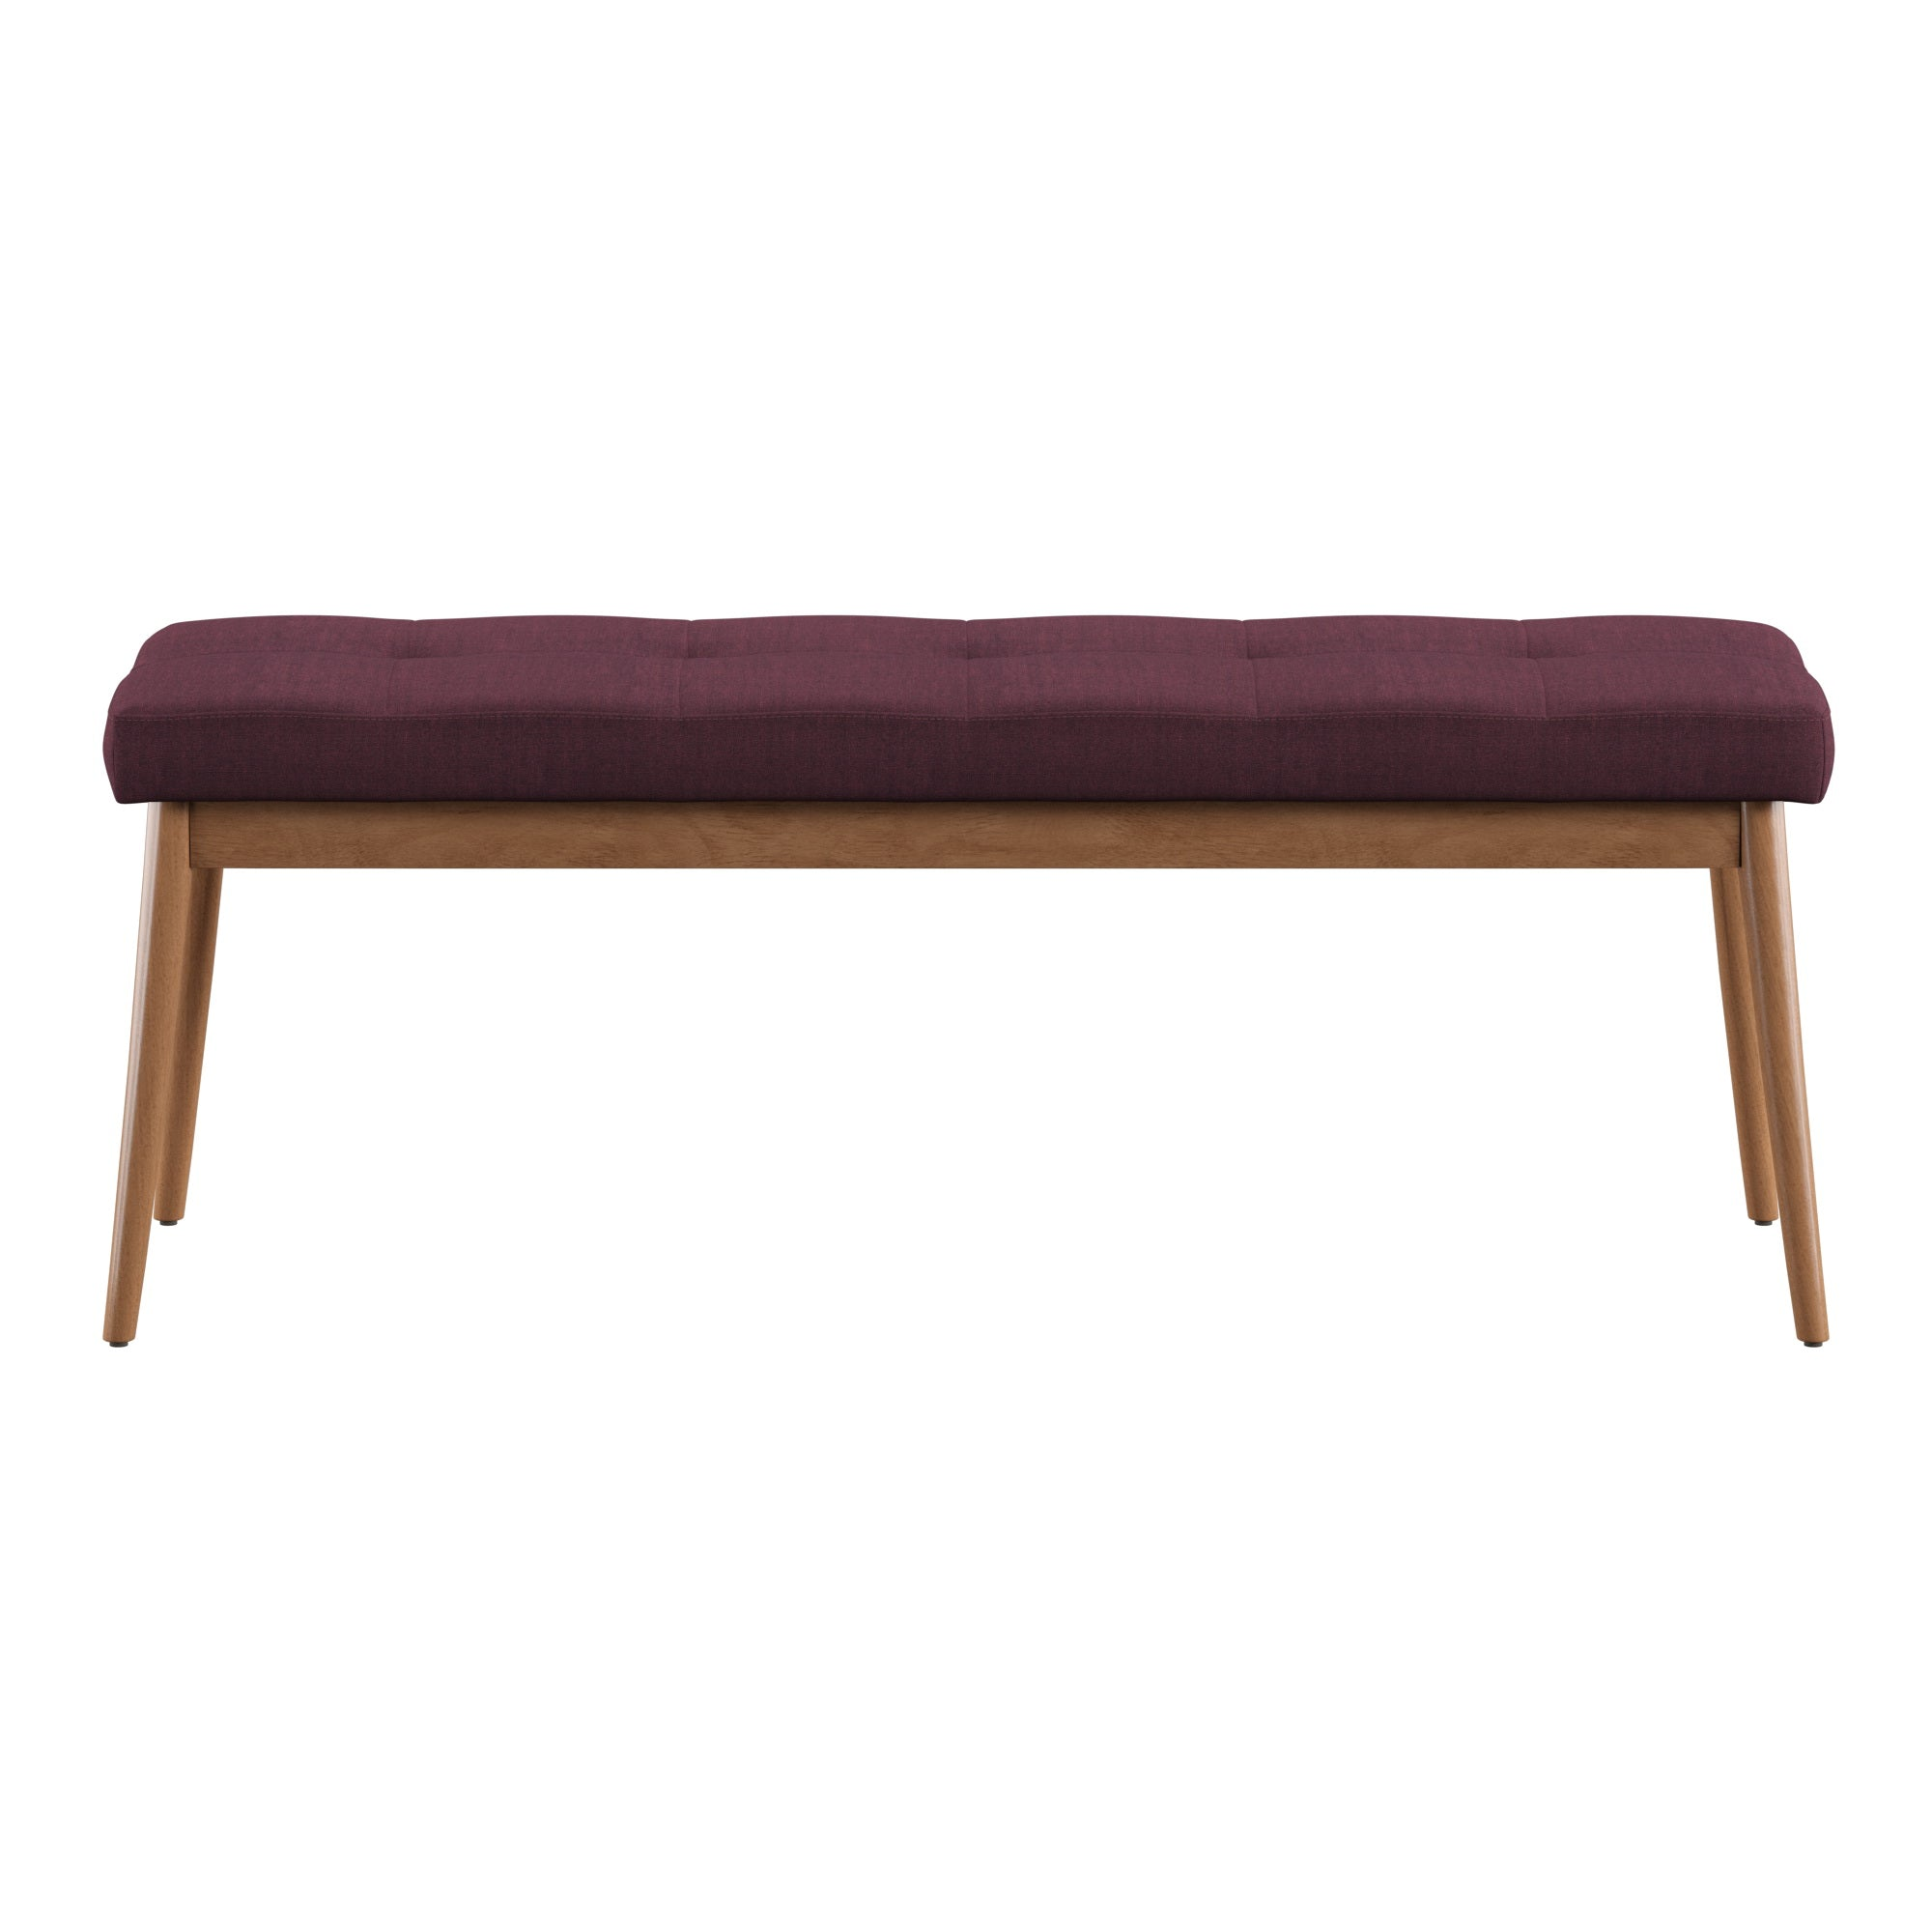 Oak Angled Leg Linen Dining Bench - Twilight Blue